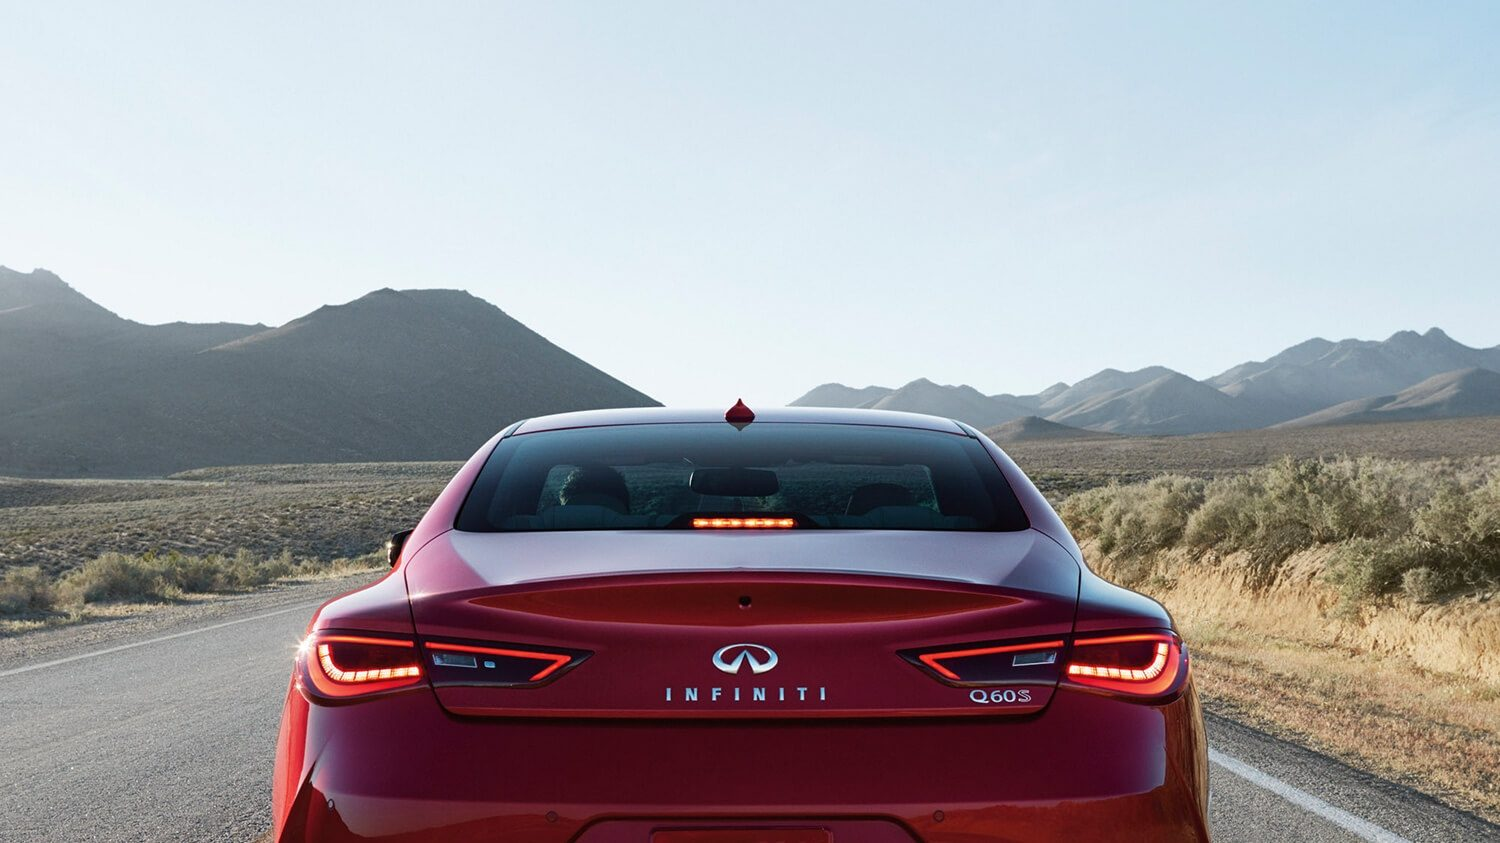 INFINITI Q60 Sporty Coupe Technology Red Sport Rear View